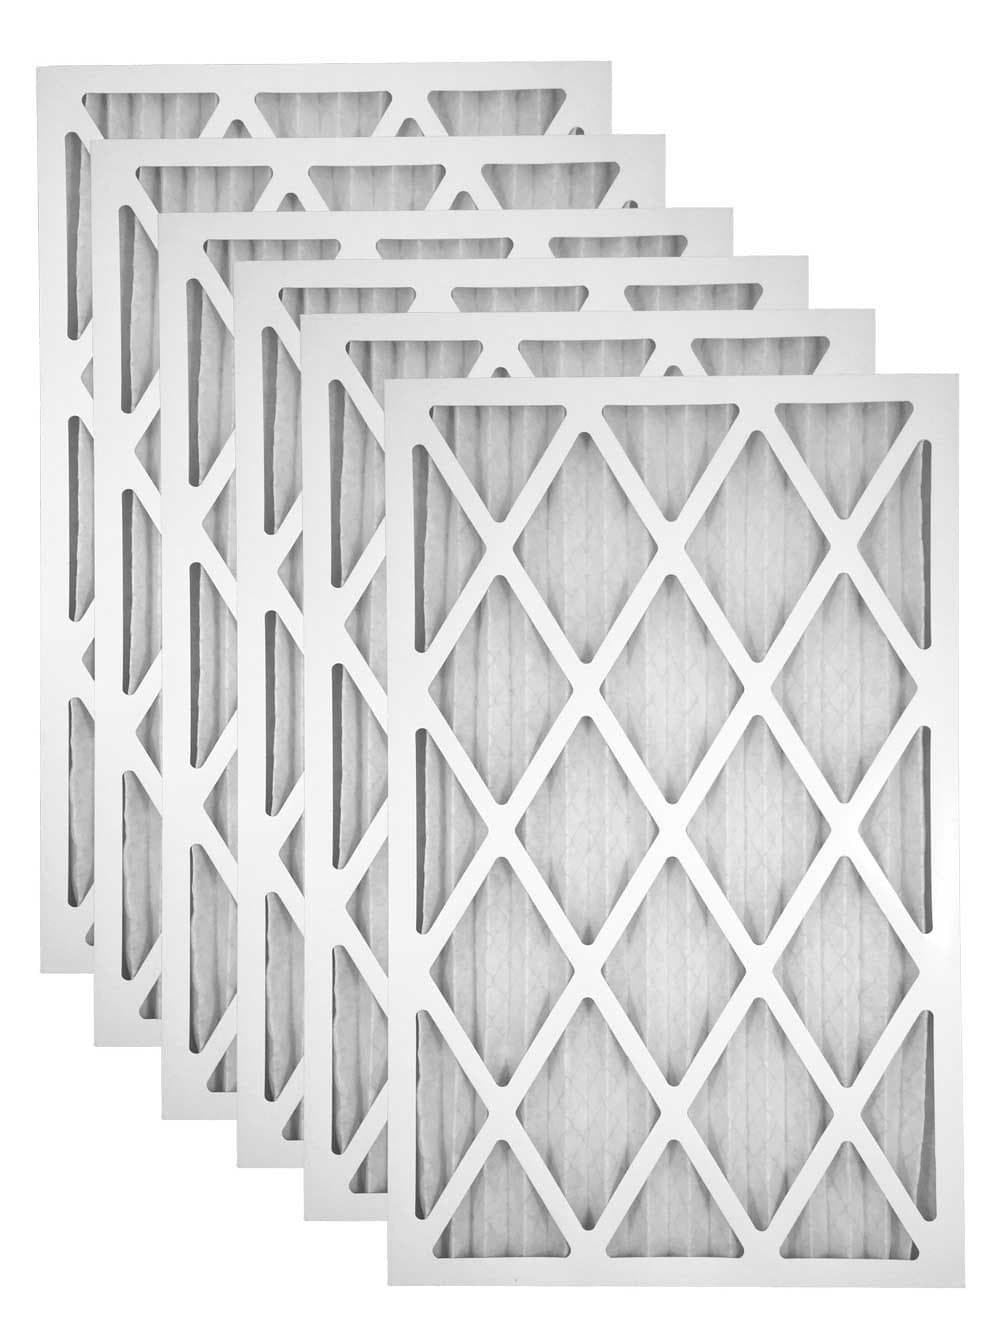 16x20x1 Merv 11 Pleated AC Furnace Filter - Case of 6